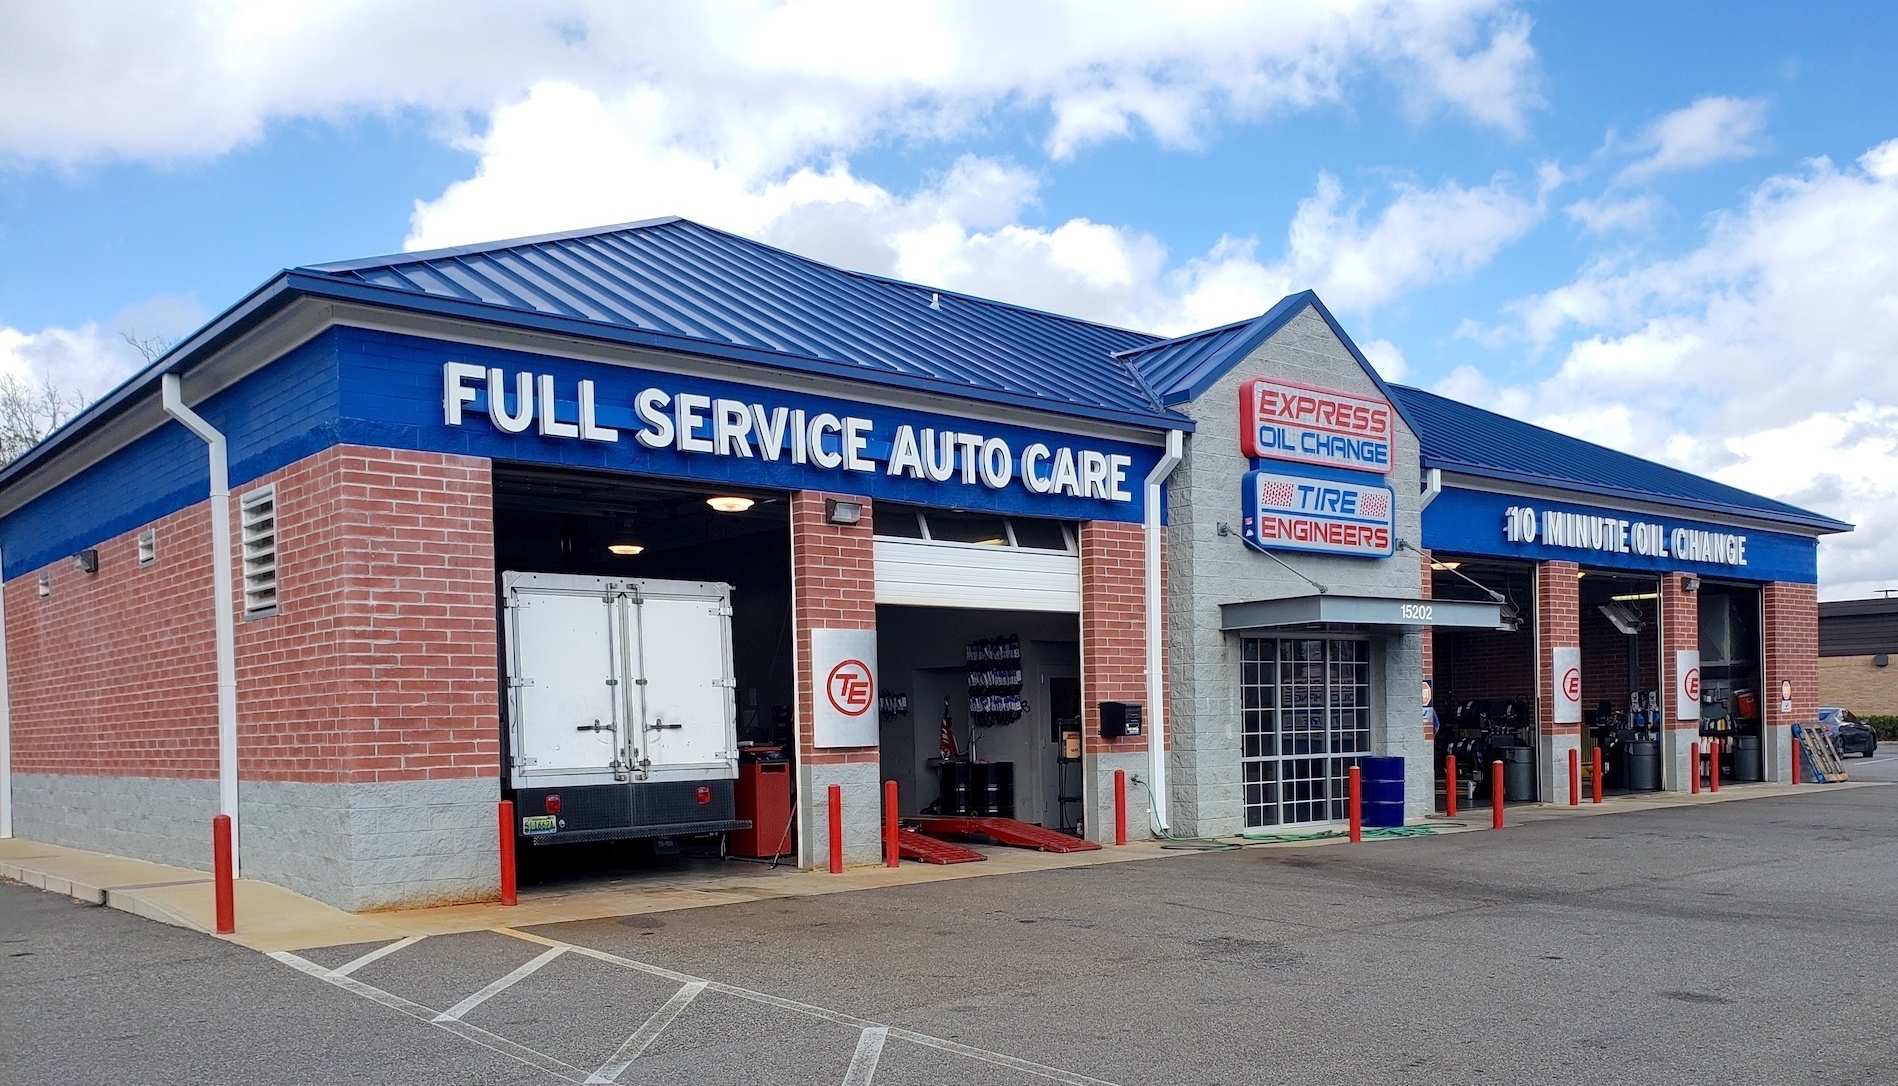 Express Oil Change & Tire Engineers Jacksonville, FL - River City store